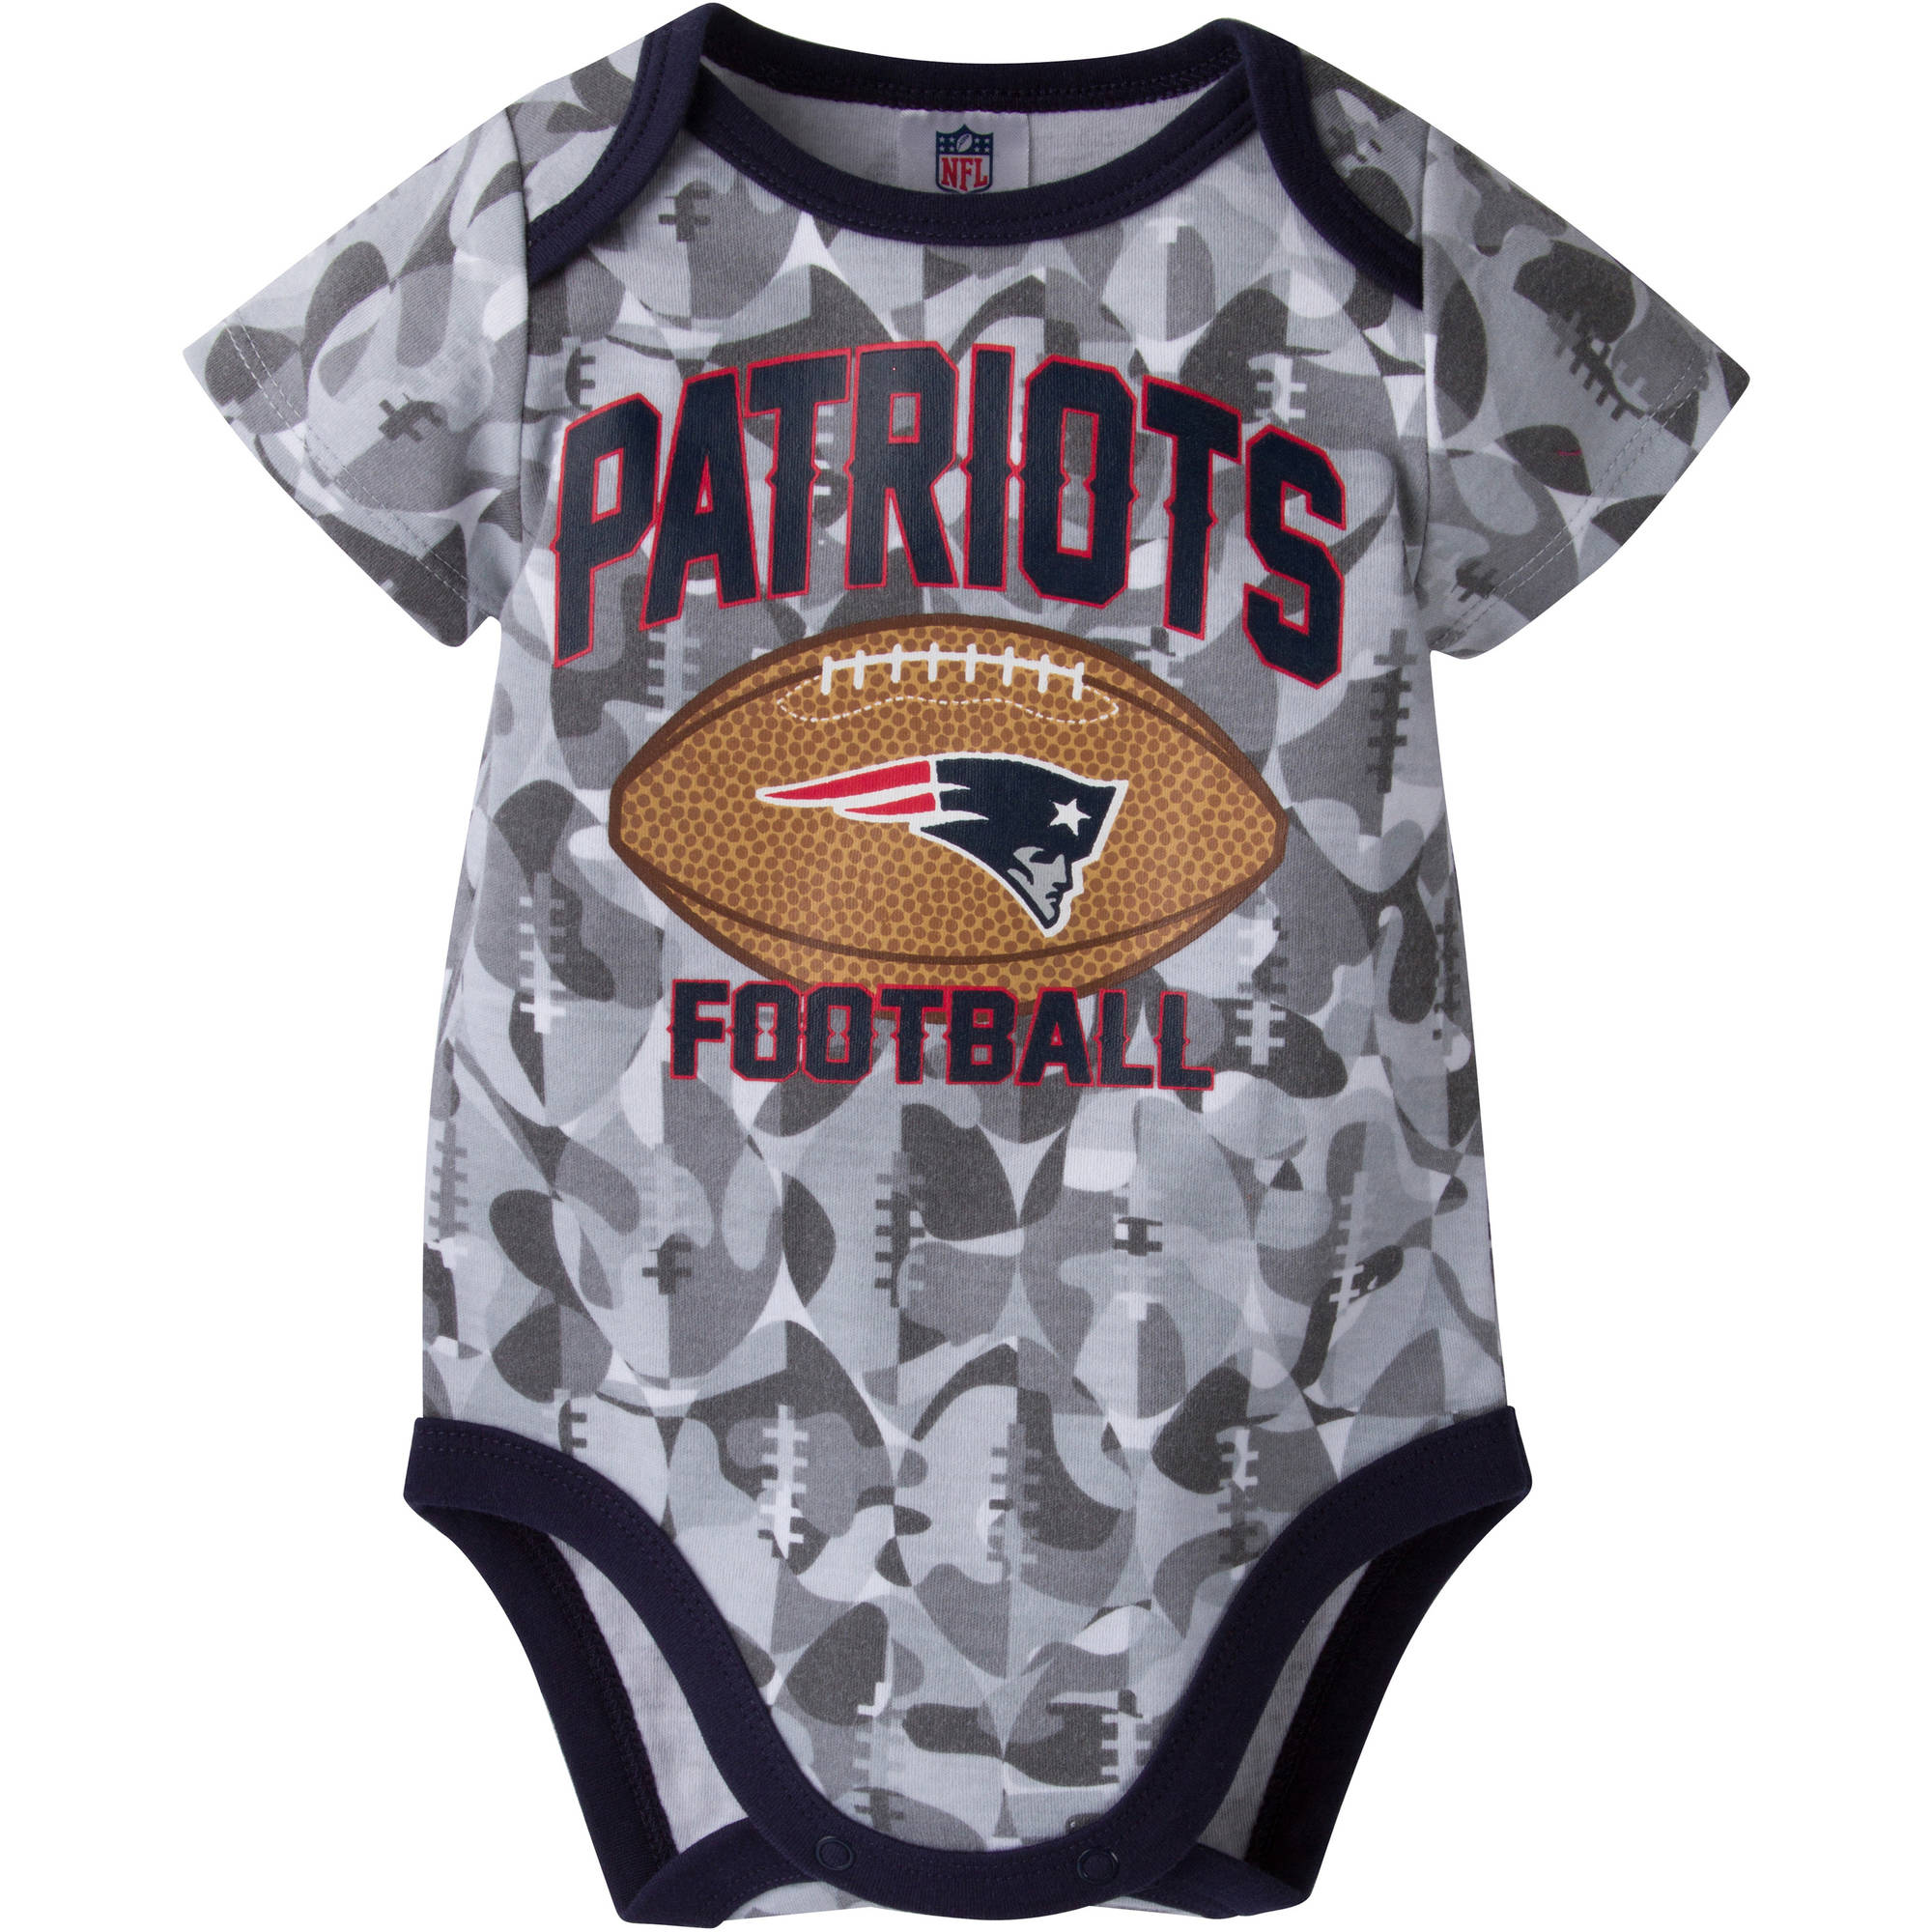 NFL New England Patriots Baby Boys Short Sleeve Camo Bodysuit